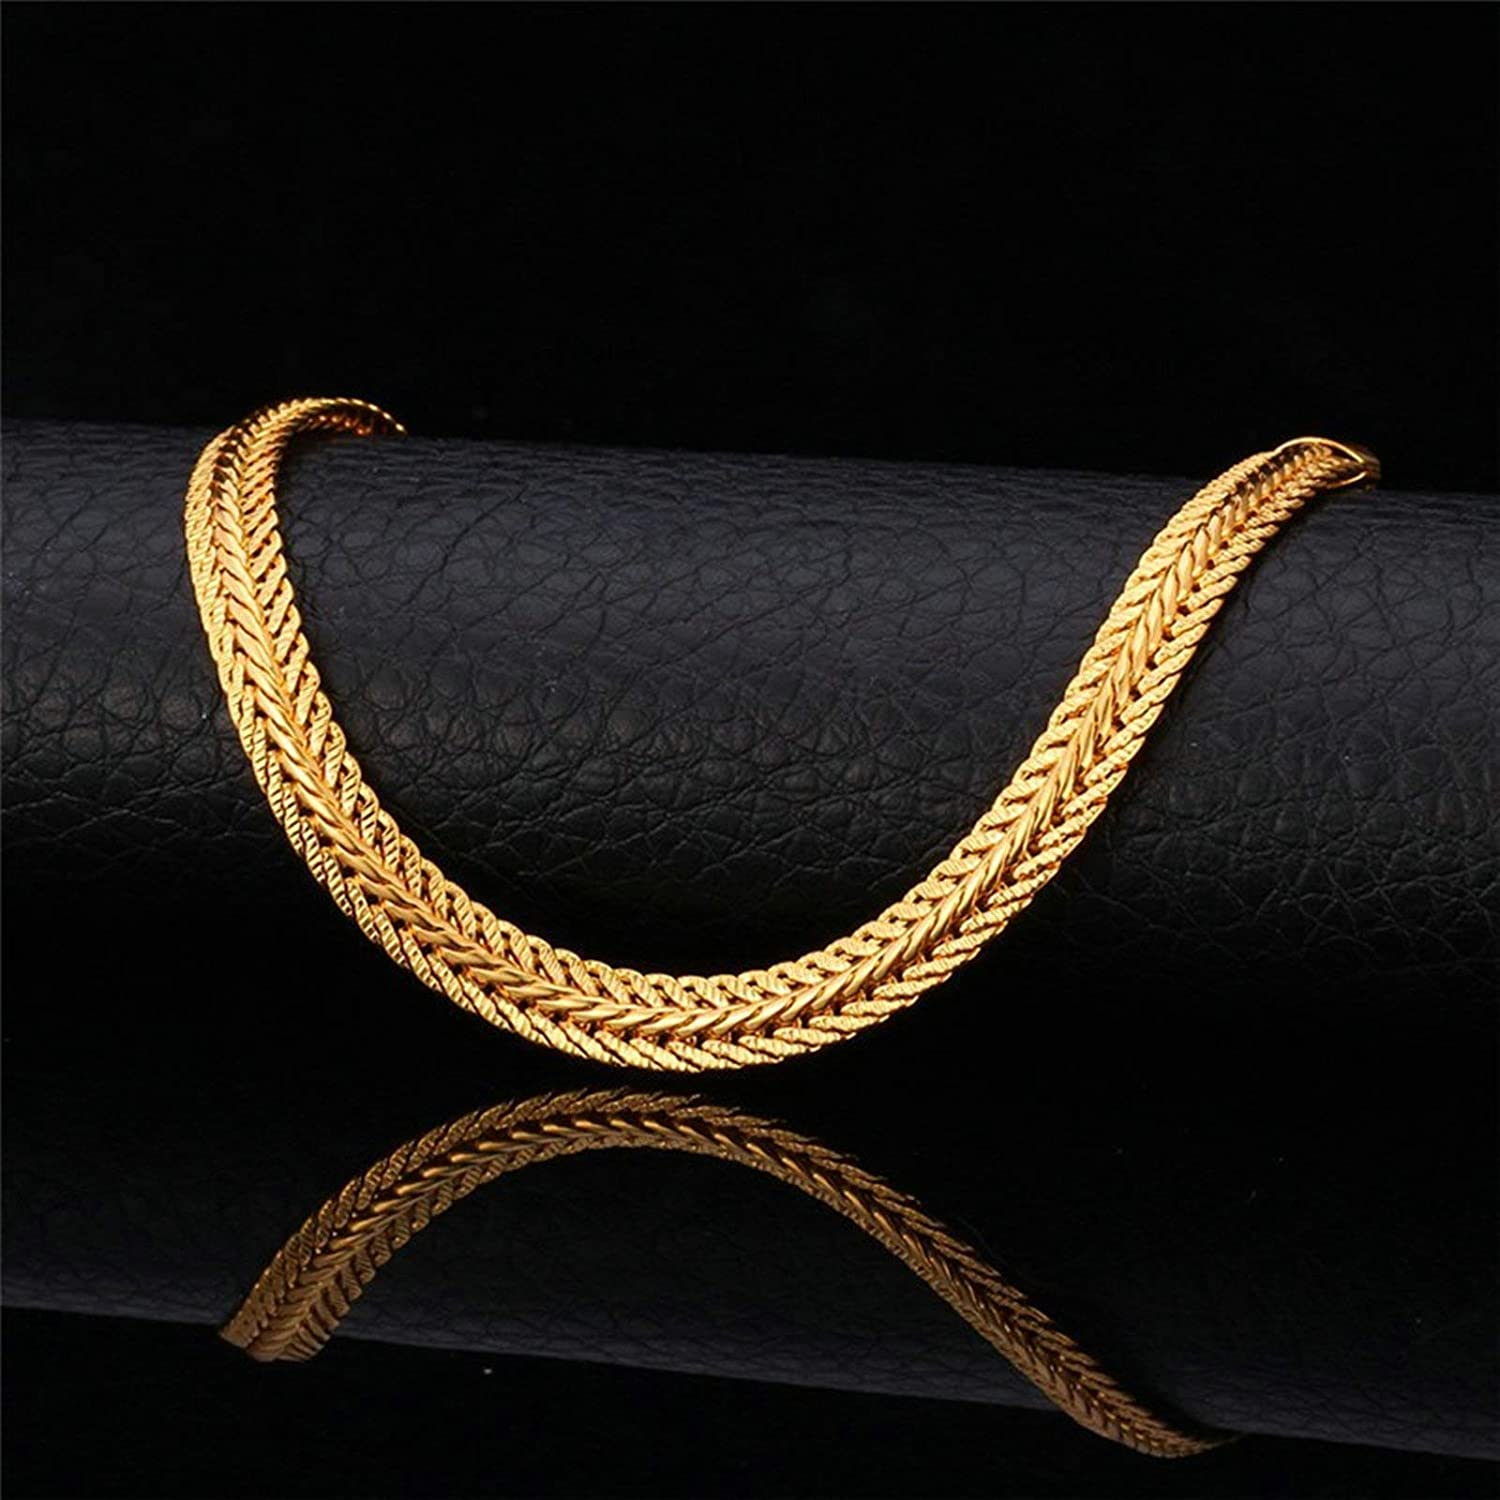 MoAndy Chain Necklaces Copper Lobster-Claw 6Mm Chain Link Necklace Punk 18-32 Inch Gold Silver Black Rose Gold